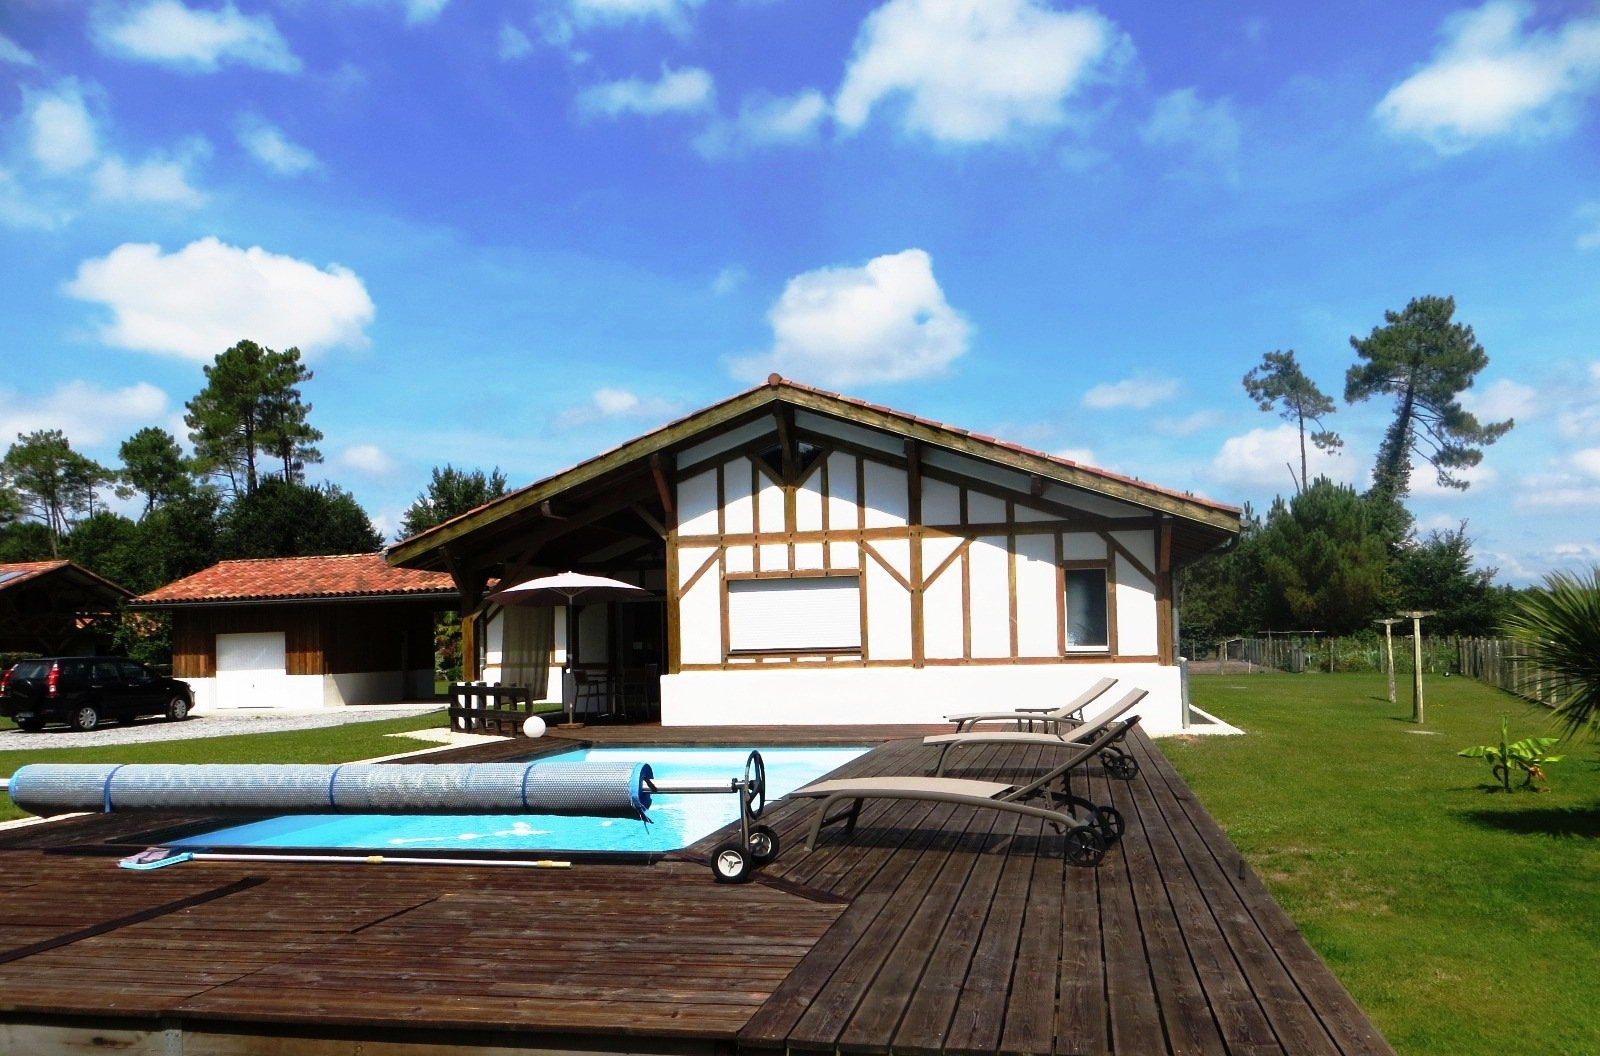 Vente Maison 5 Pieces De 150 M2 40990 St Paul Les Dax (27620 ... serapportantà Piscine Saint Paul Les Dax